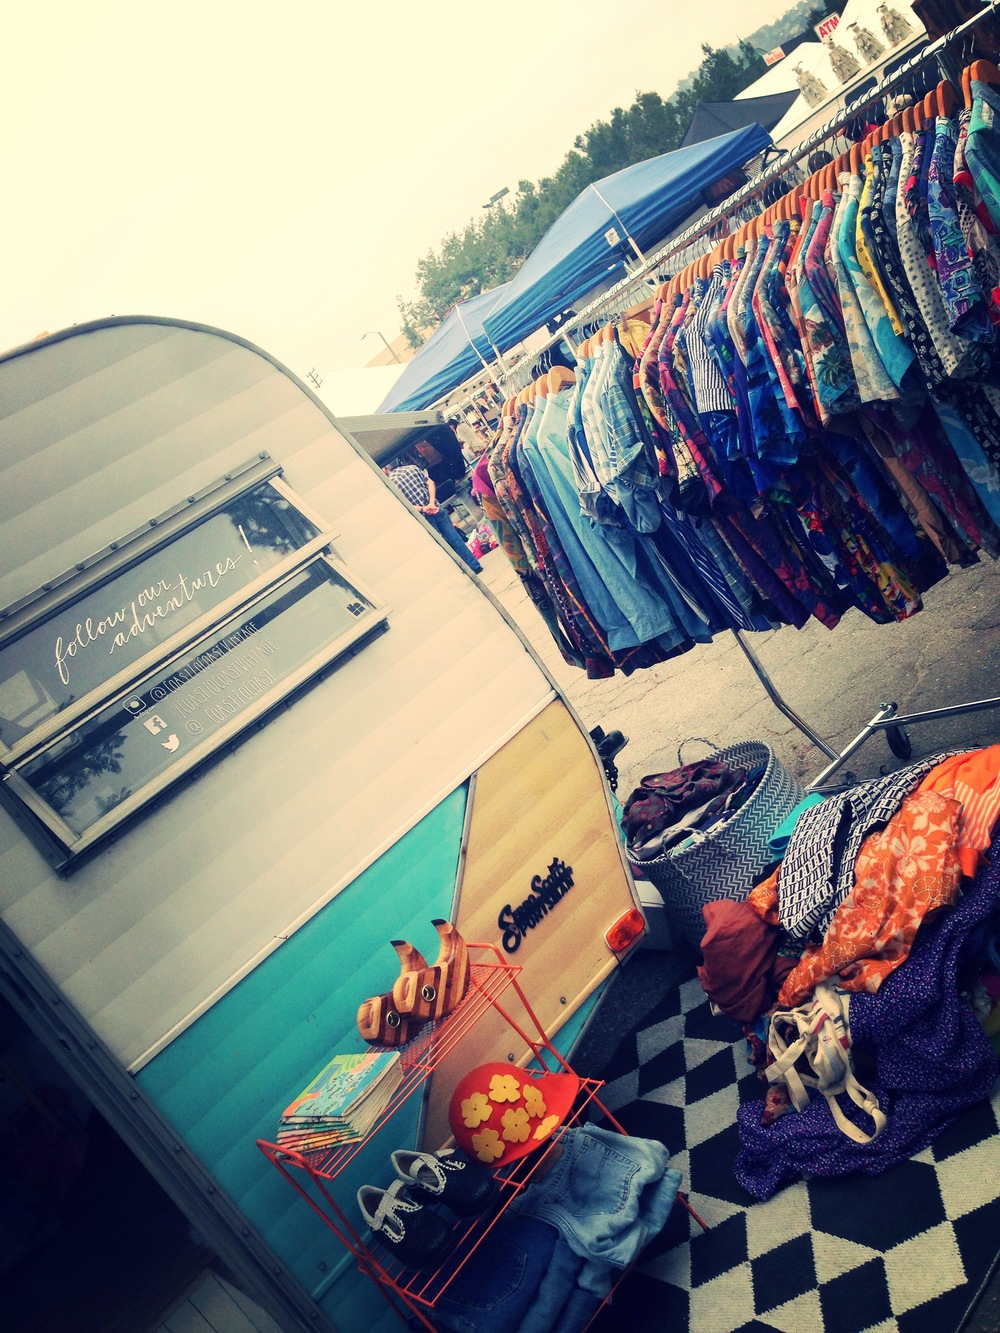 At the market for vintage clothing finds? Check out the adorable  Coast to Coast  vintage truck